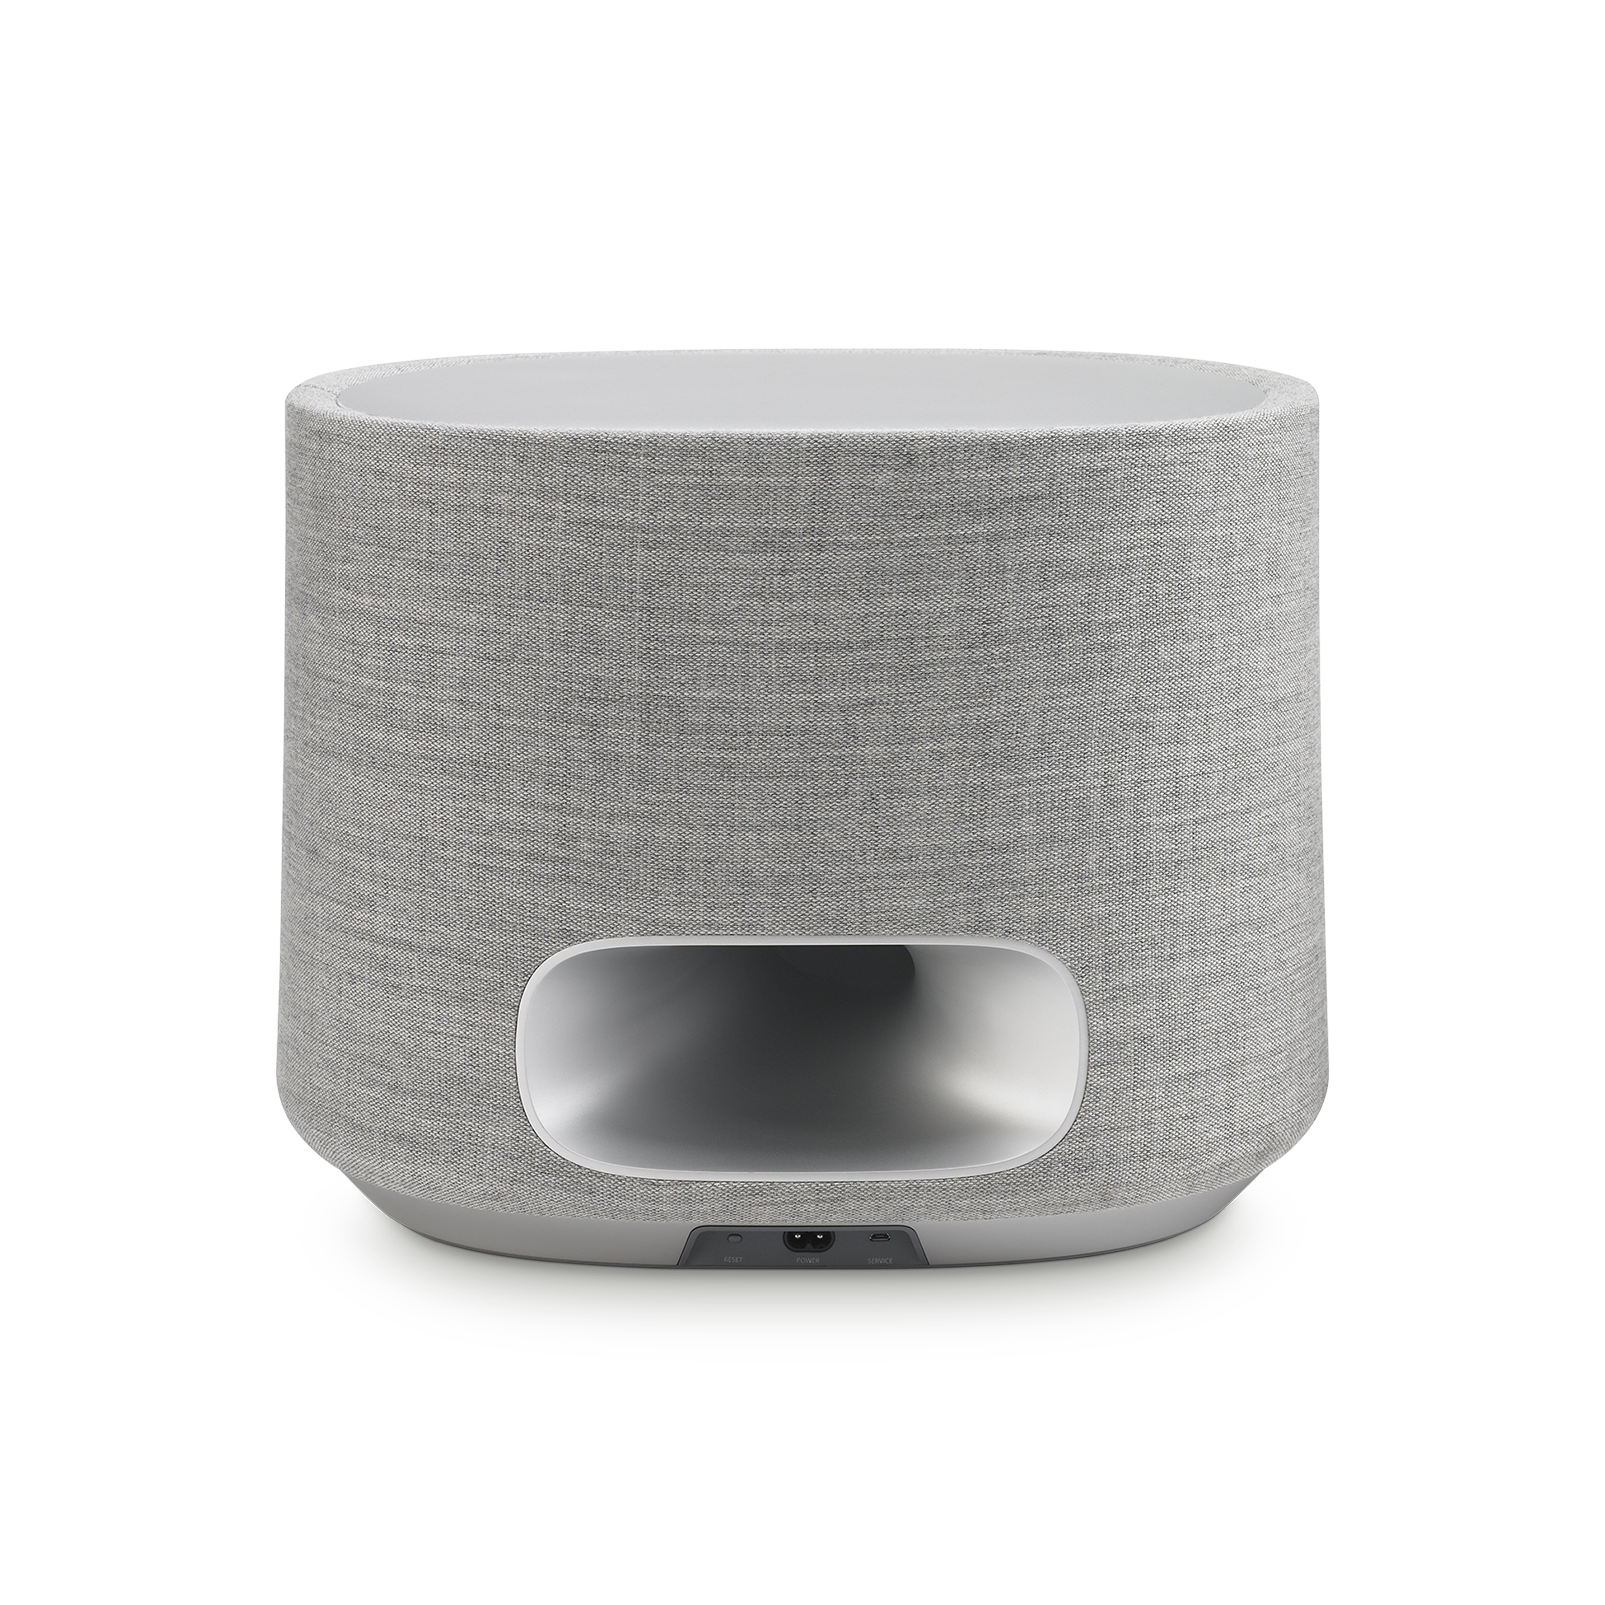 Harman Kardon Citation Sub - Grey - Thundering bass for movies and music - Back